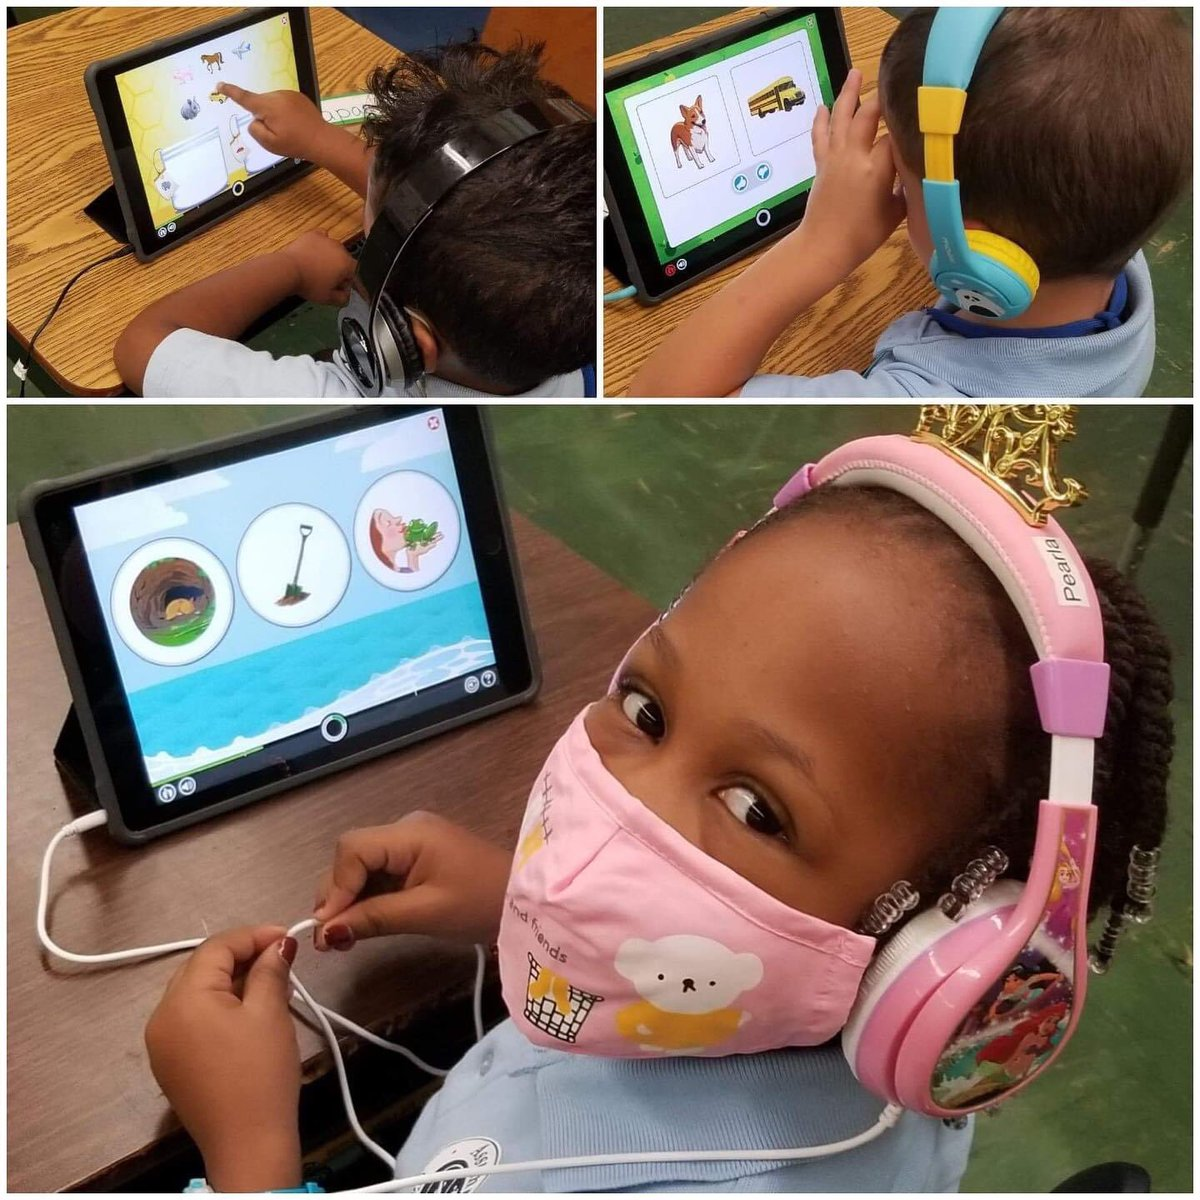 test Twitter Media - Kindergarteners at @AssumptionFFLD started @LexiaLearning this week! Lexia educates through adaptive assessment and personalized instruction. @Diobpt @BptSup #personalizedlearning @rosettastone https://t.co/4YLaMLfi1C